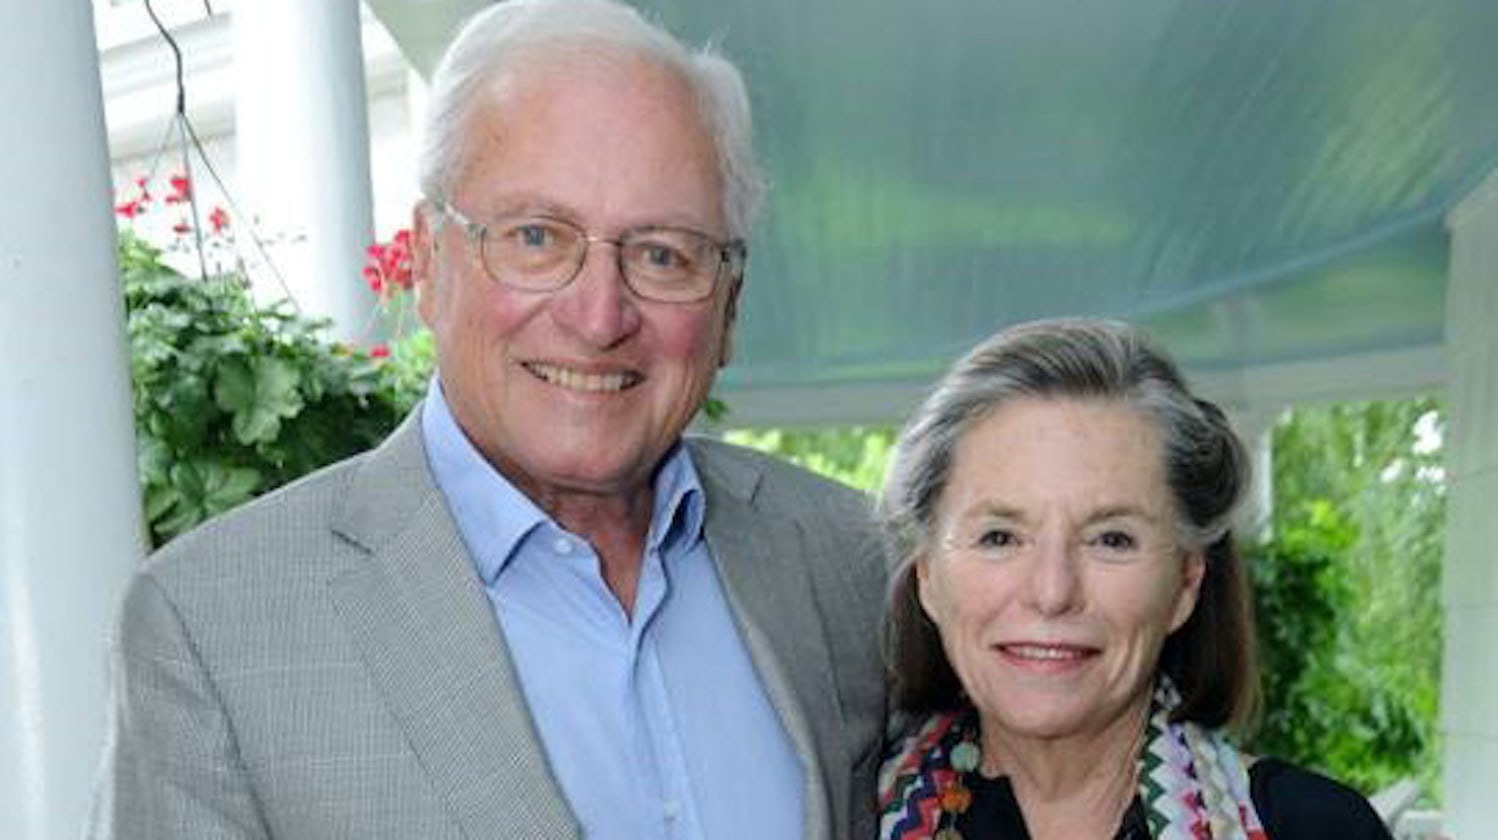 Lynne and Richard Pasculano donate a landmark $14 million to support Smilow Cancer Care Center Greenwich Hospital